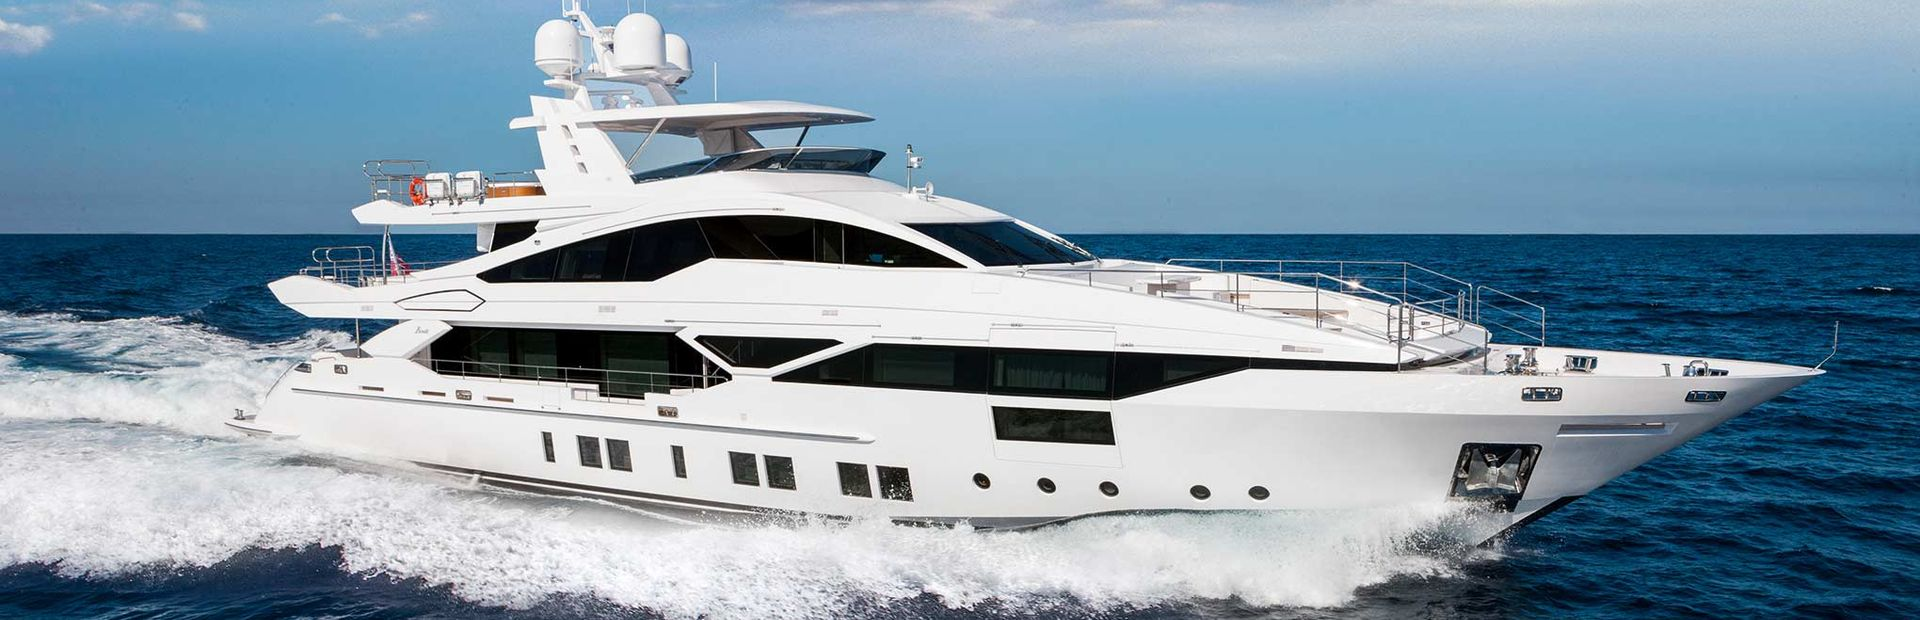 Fast 140' Yacht Charter